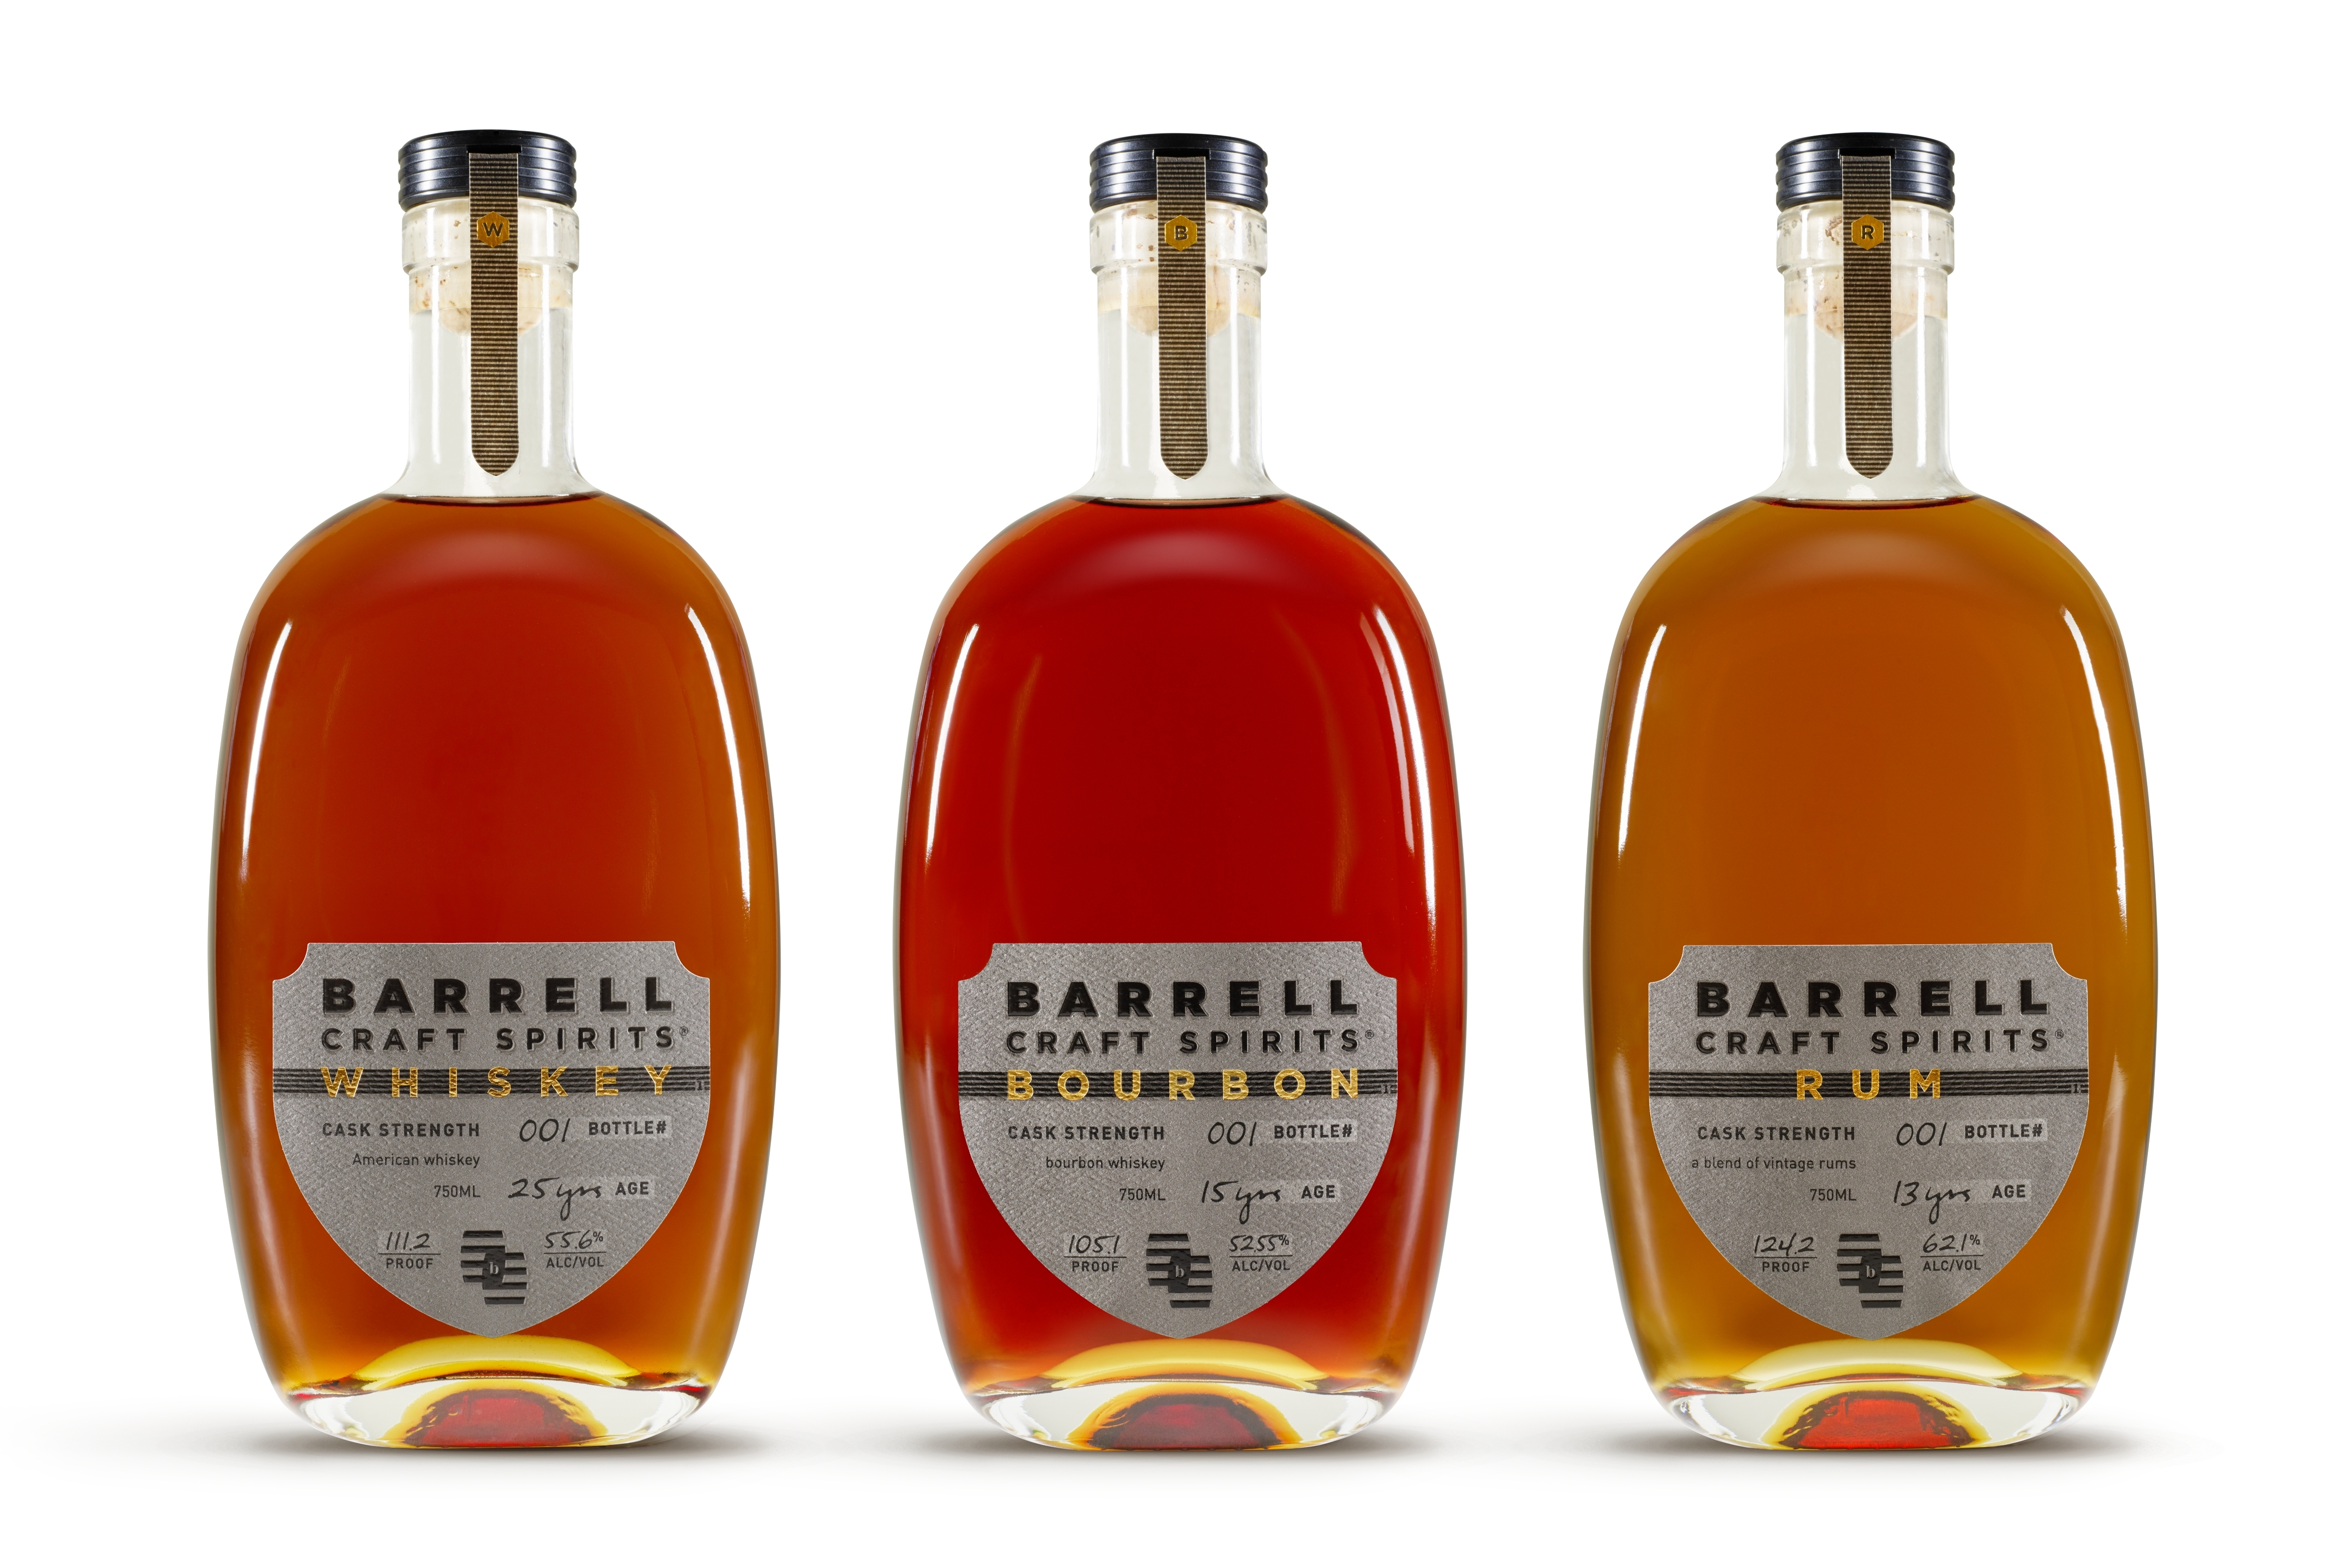 award winning barrell craft spirits announces the barrell craft